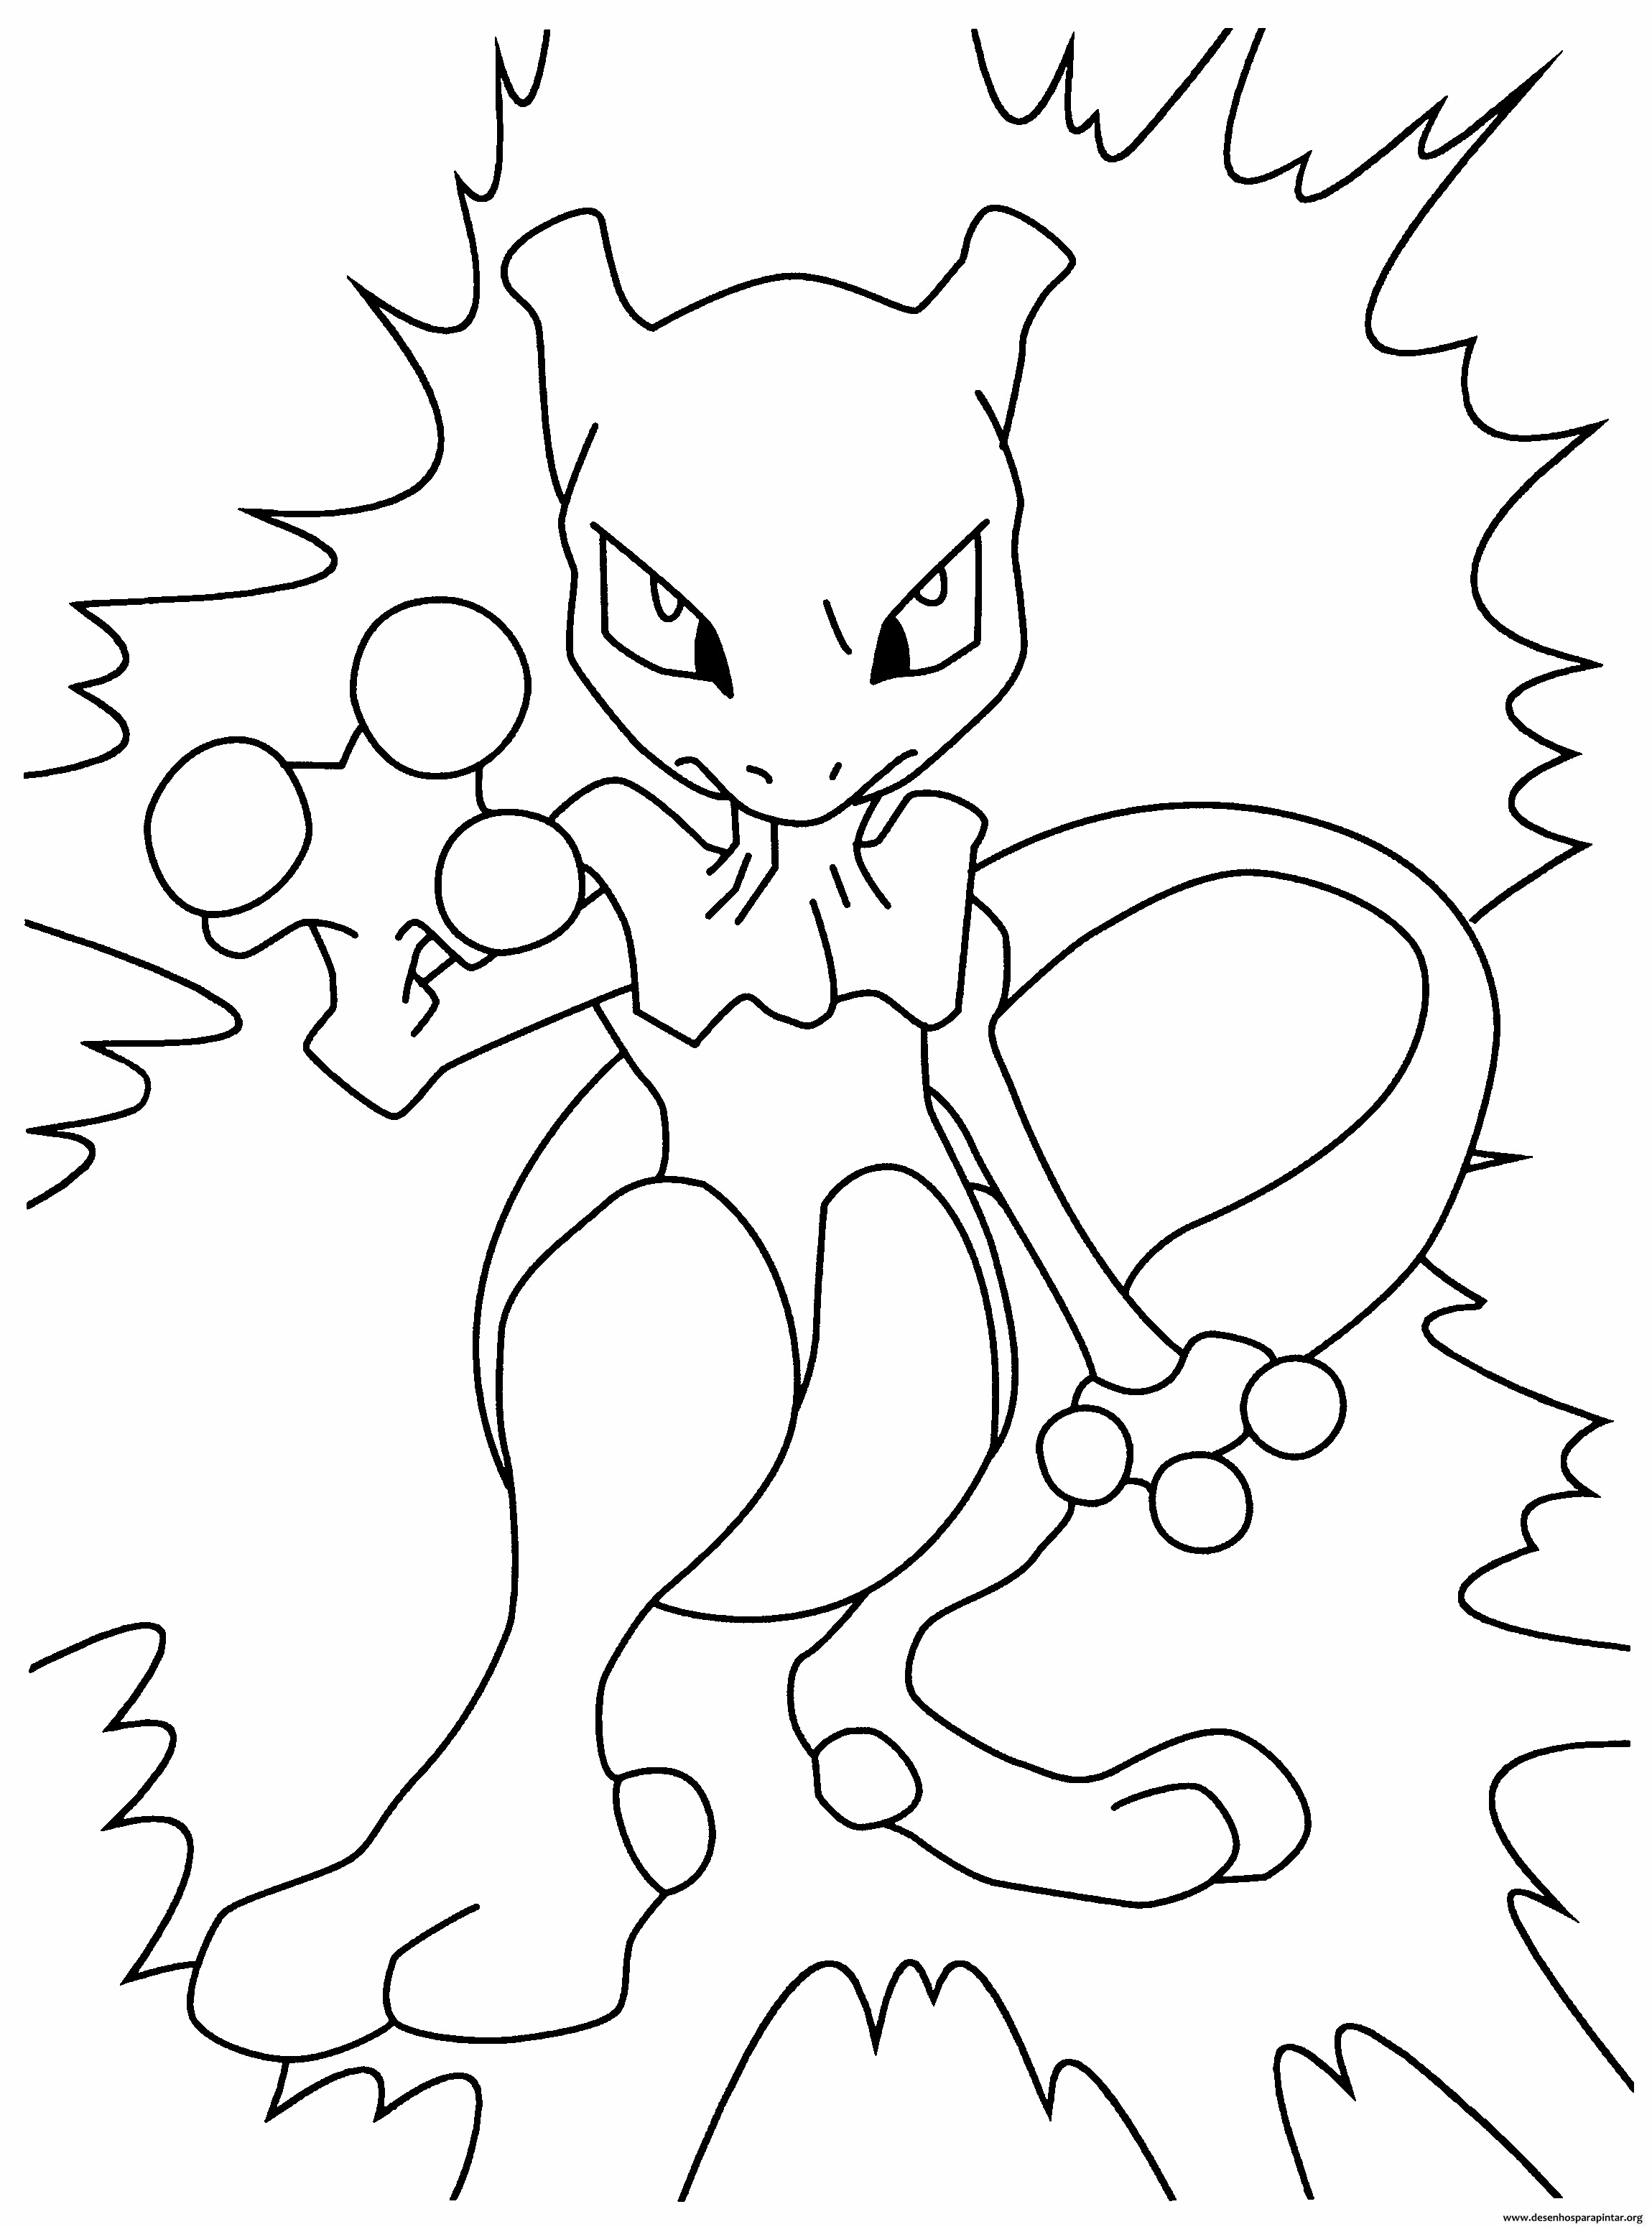 cute zoo animals coloring pages besides free christmas coloring pages